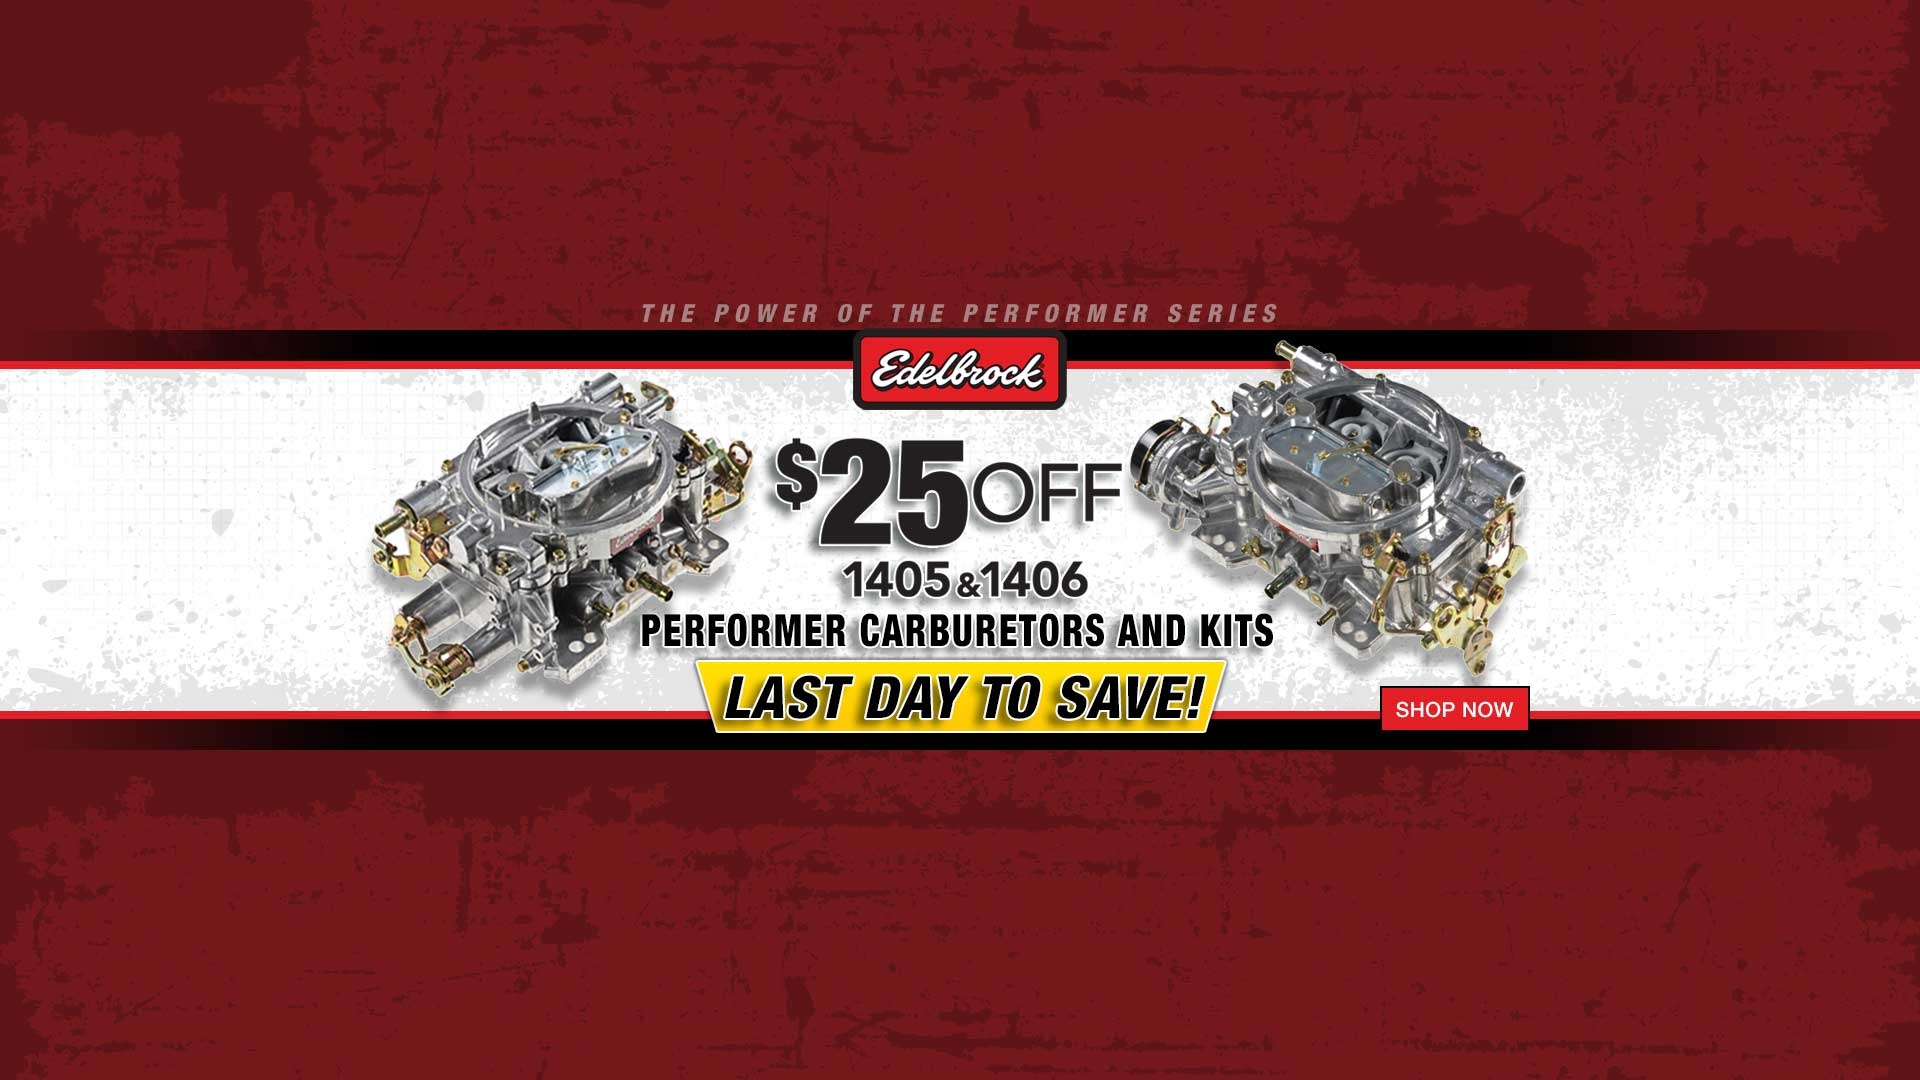 Edelbrock $25 off 1405, 1406, and more